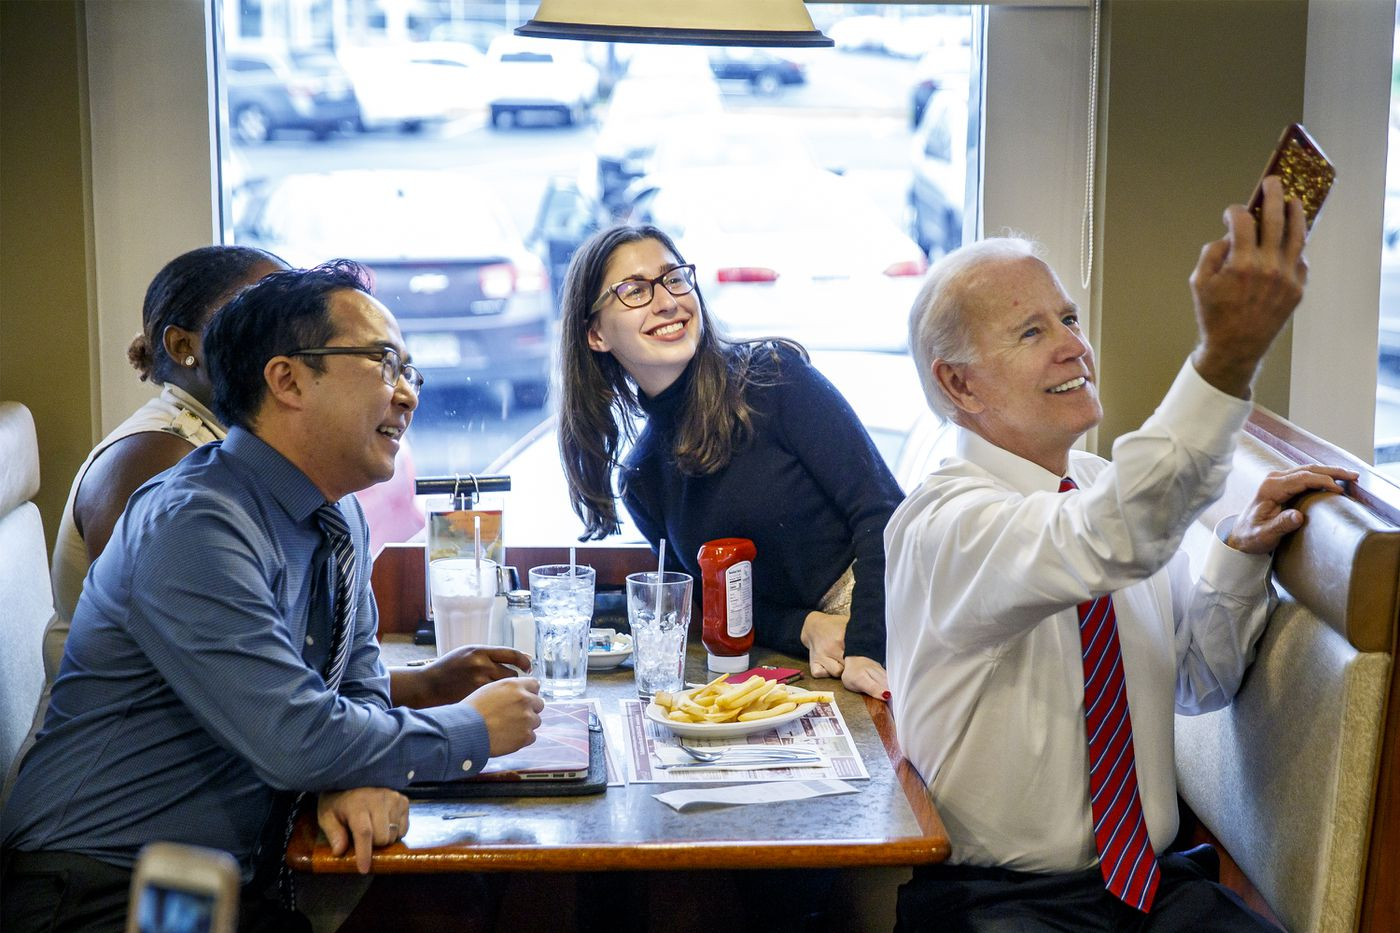 At Burlington County diner, Joe Biden rallies support for Democratic House candidate Andy Kim